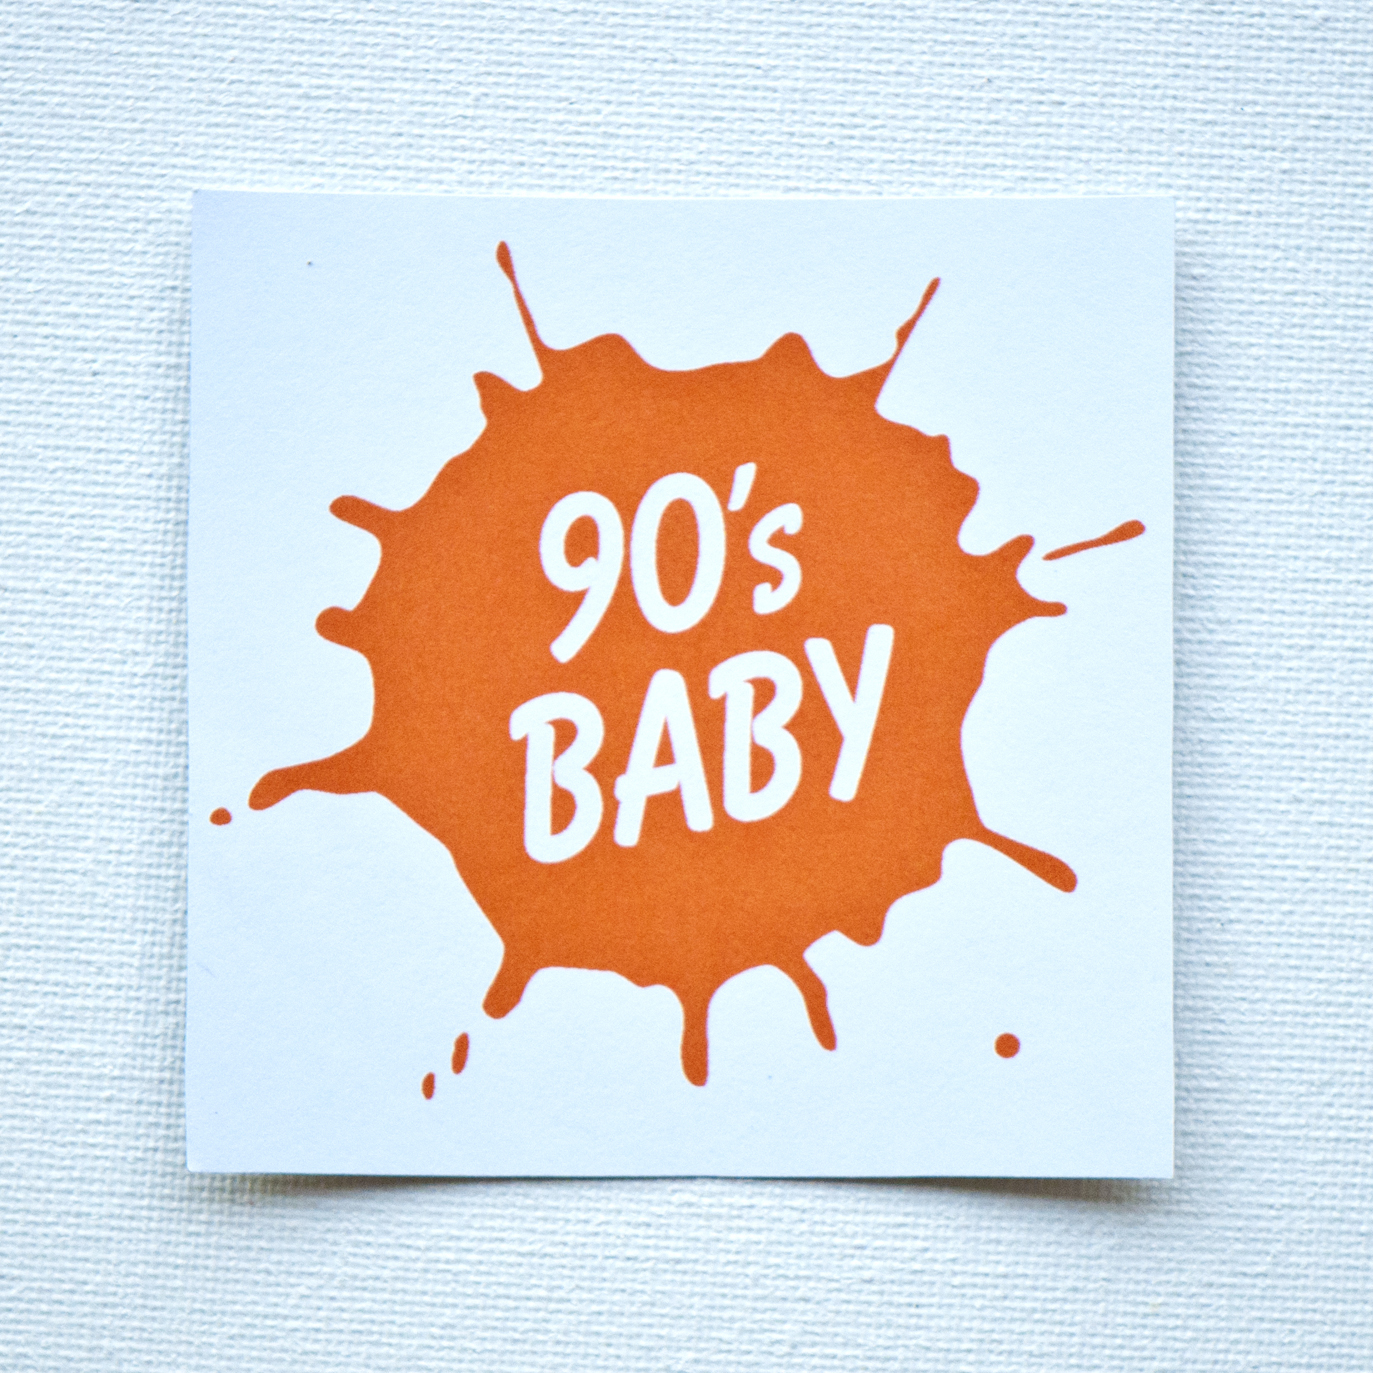 90's Baby Sticker · Broseph · Online Store Powered by Storenvy: brosephyo.storenvy.com/products/2083634-90s-baby-sticker